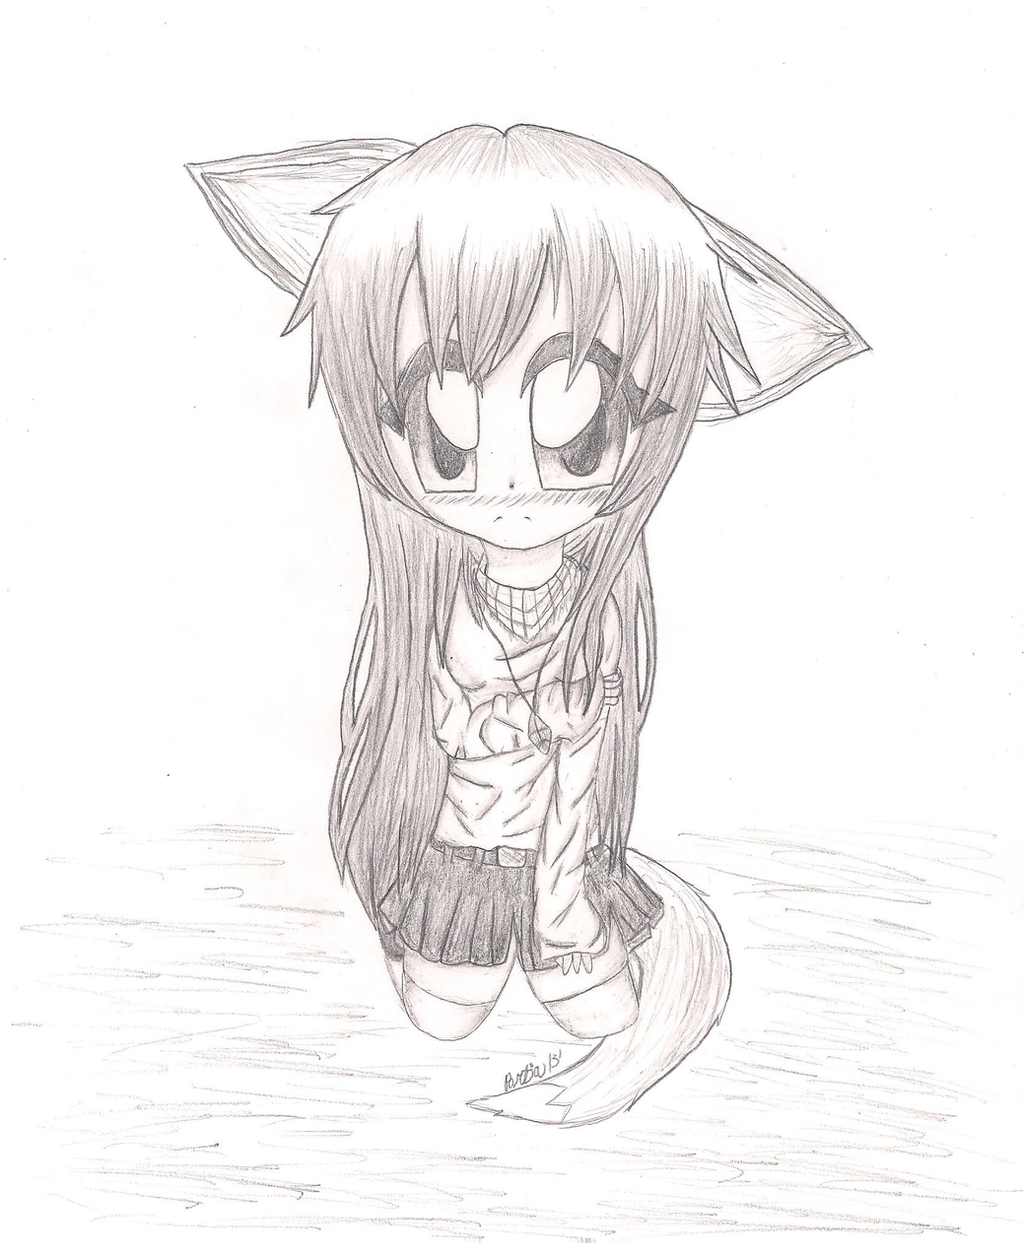 Shy Fox Anime Girl (Sketch) By MysticalWaffles On DeviantArt